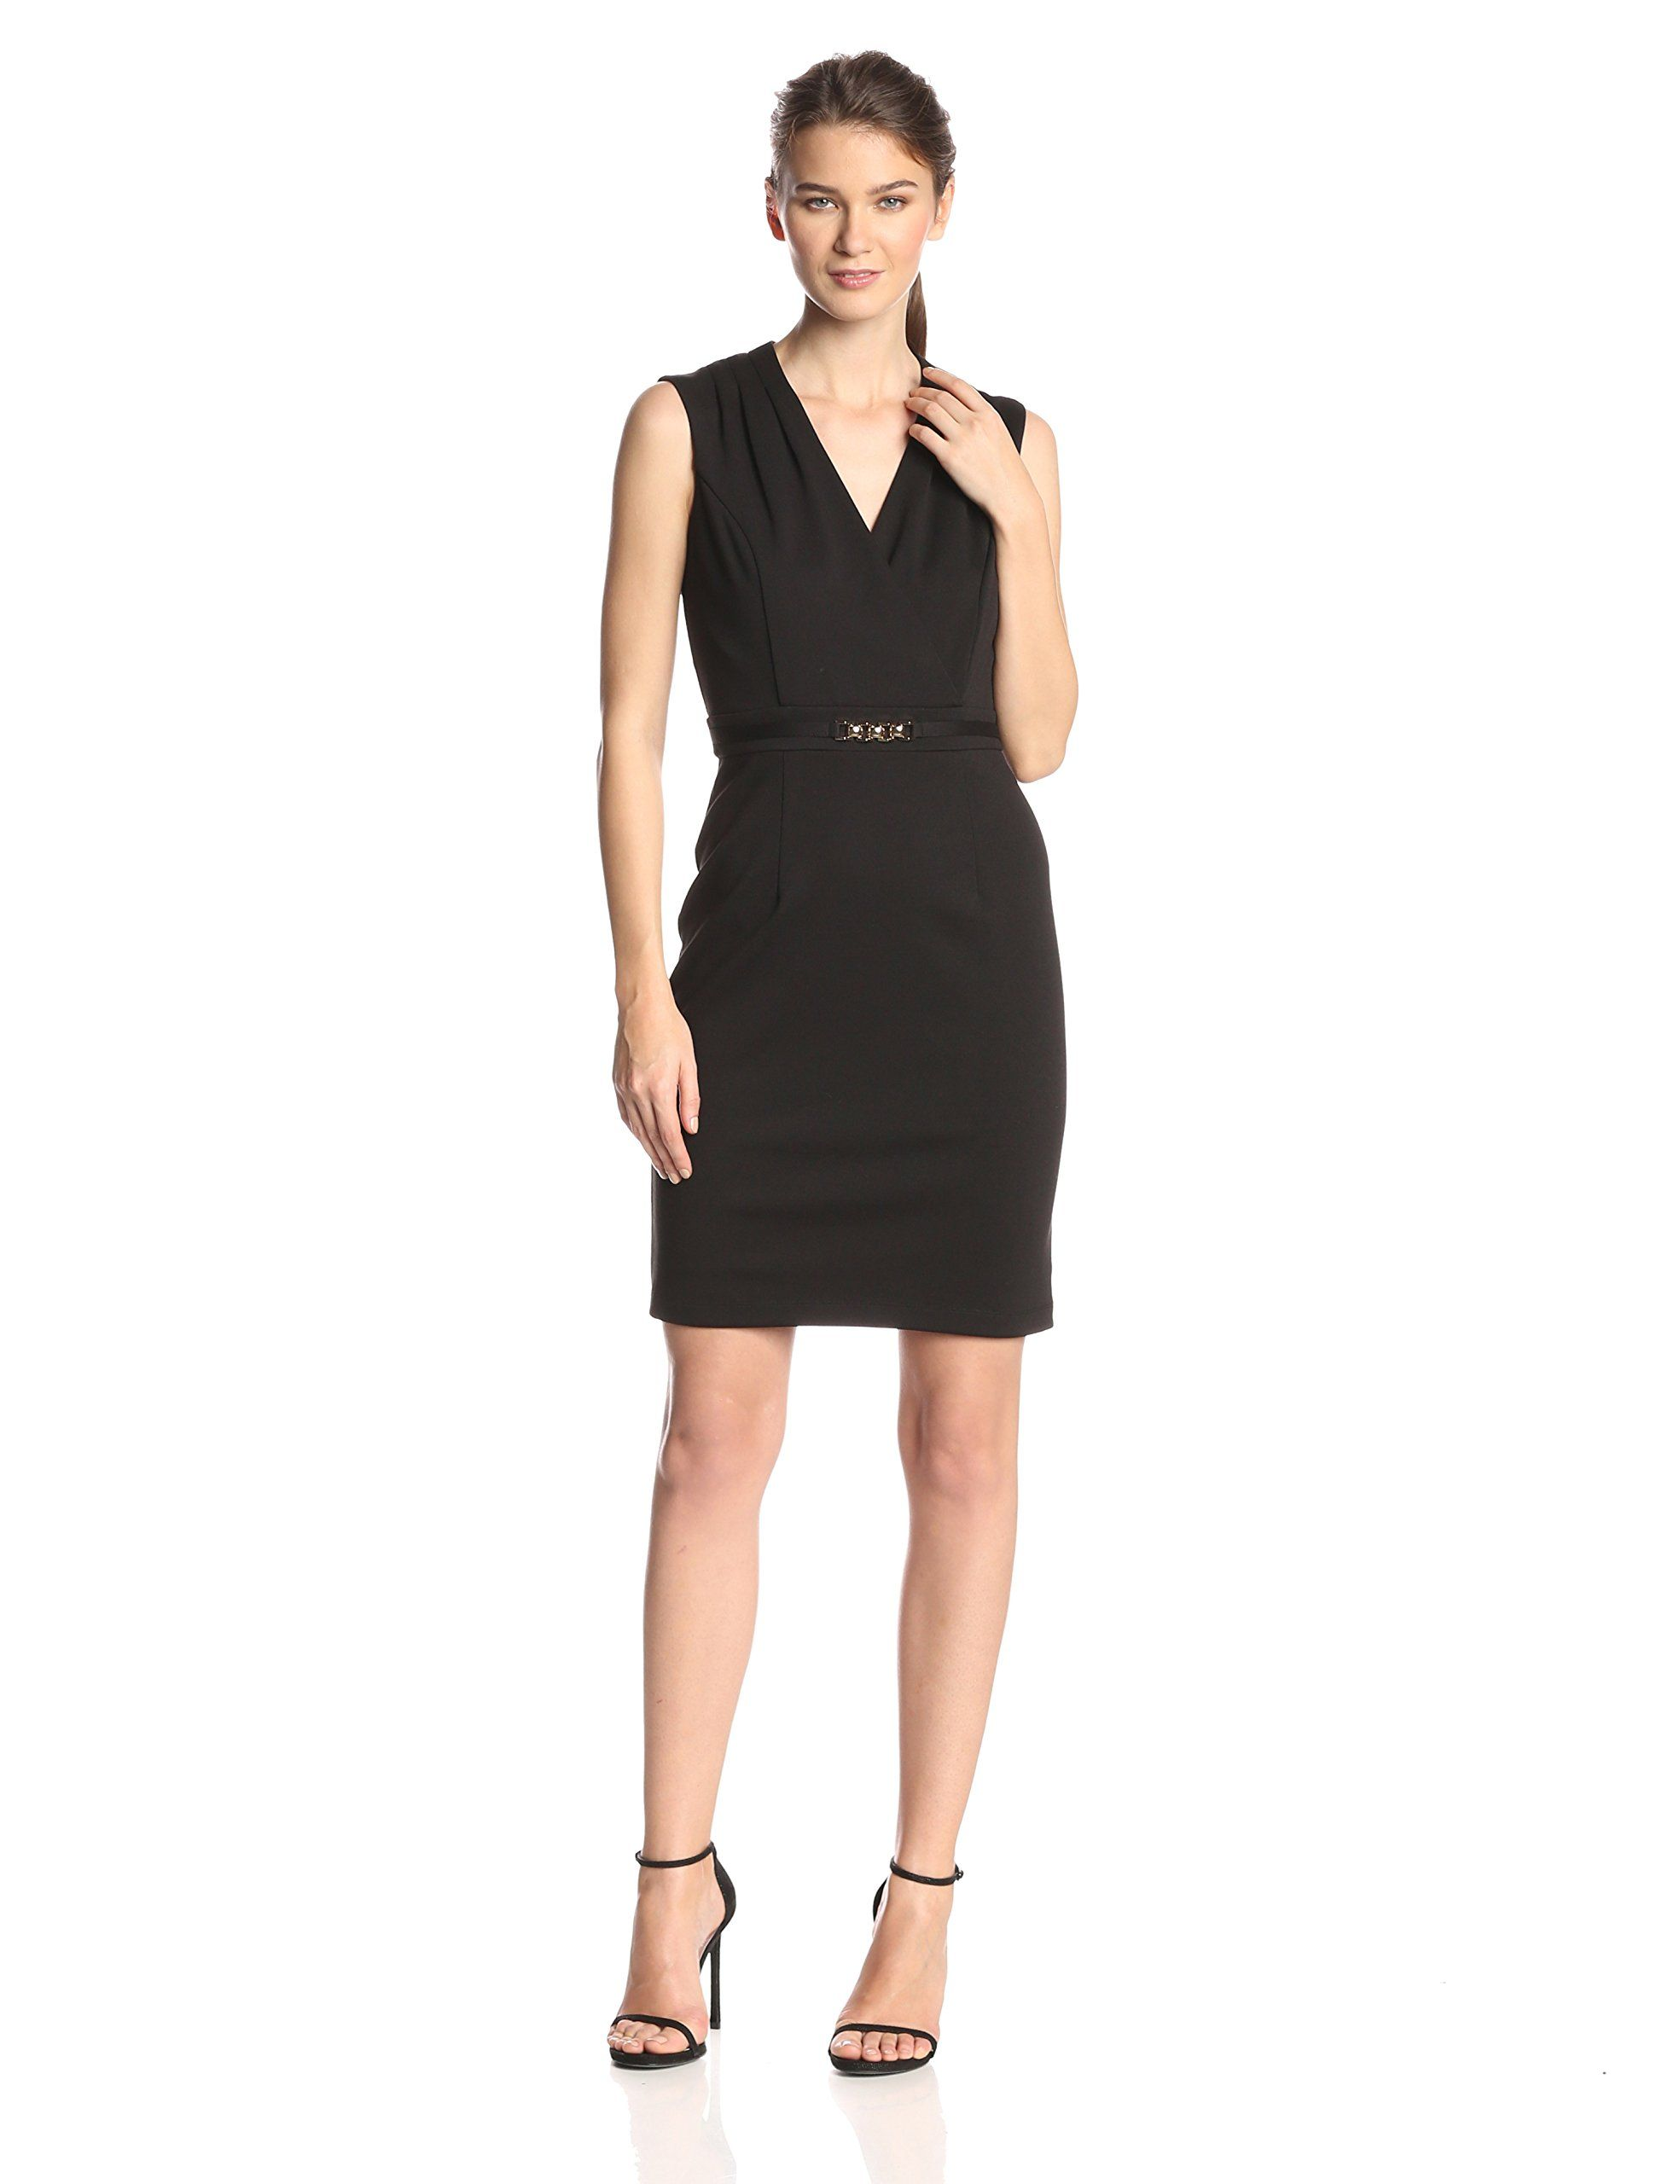 ellen tracy women's sleeveless v-neck sheath dress, black, 2